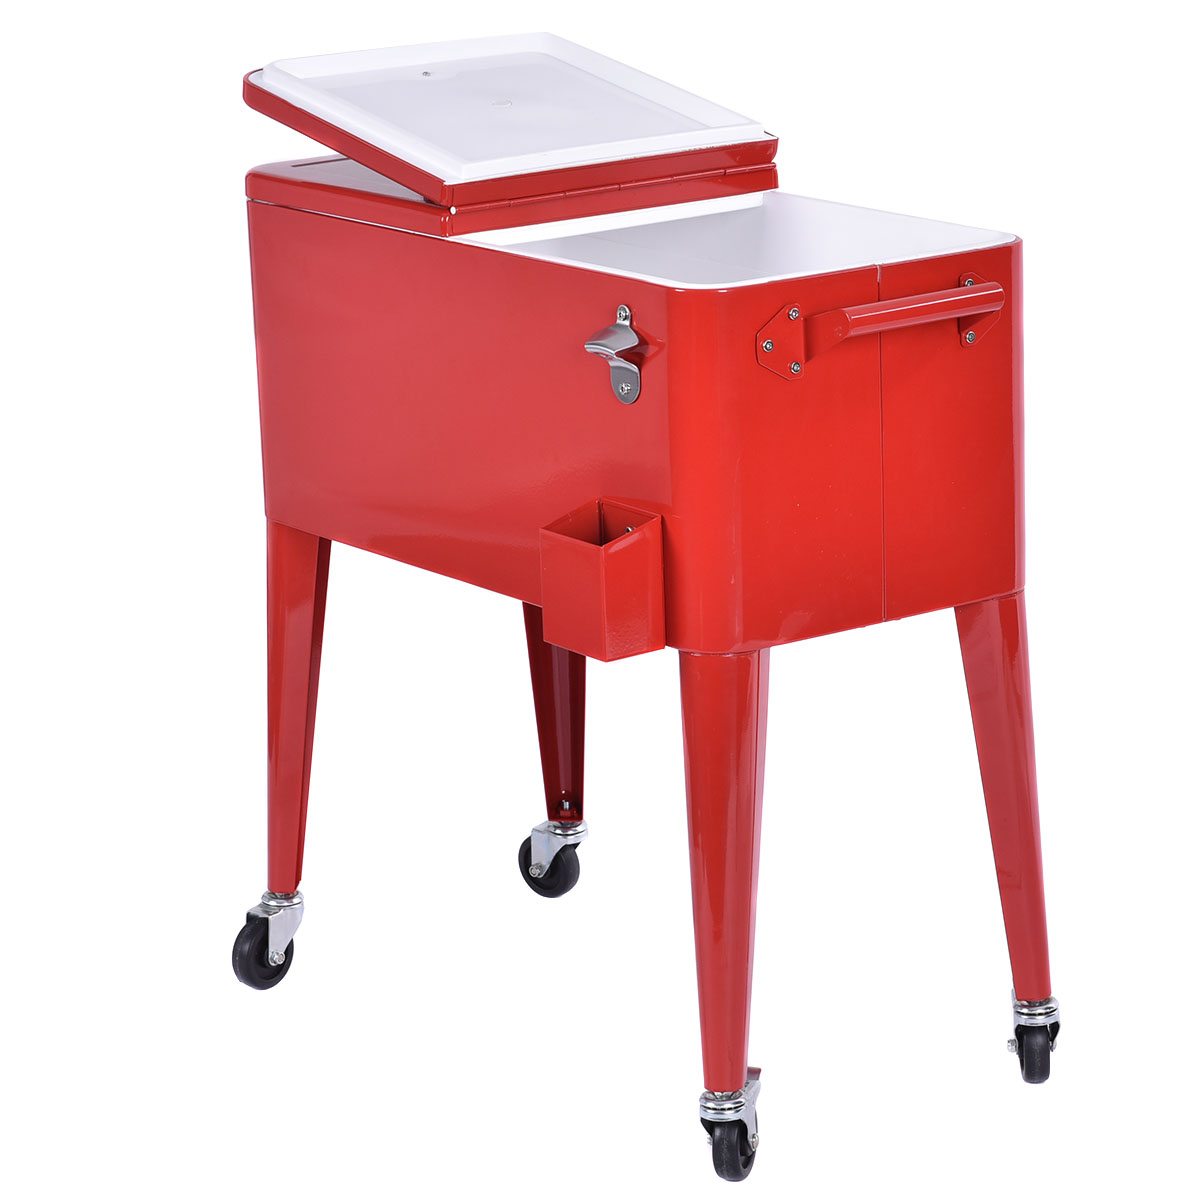 Costway Red Outdoor Patio 80 Quart Cooler Cart Ice Beer Beverage Chest Party Portable by Costway